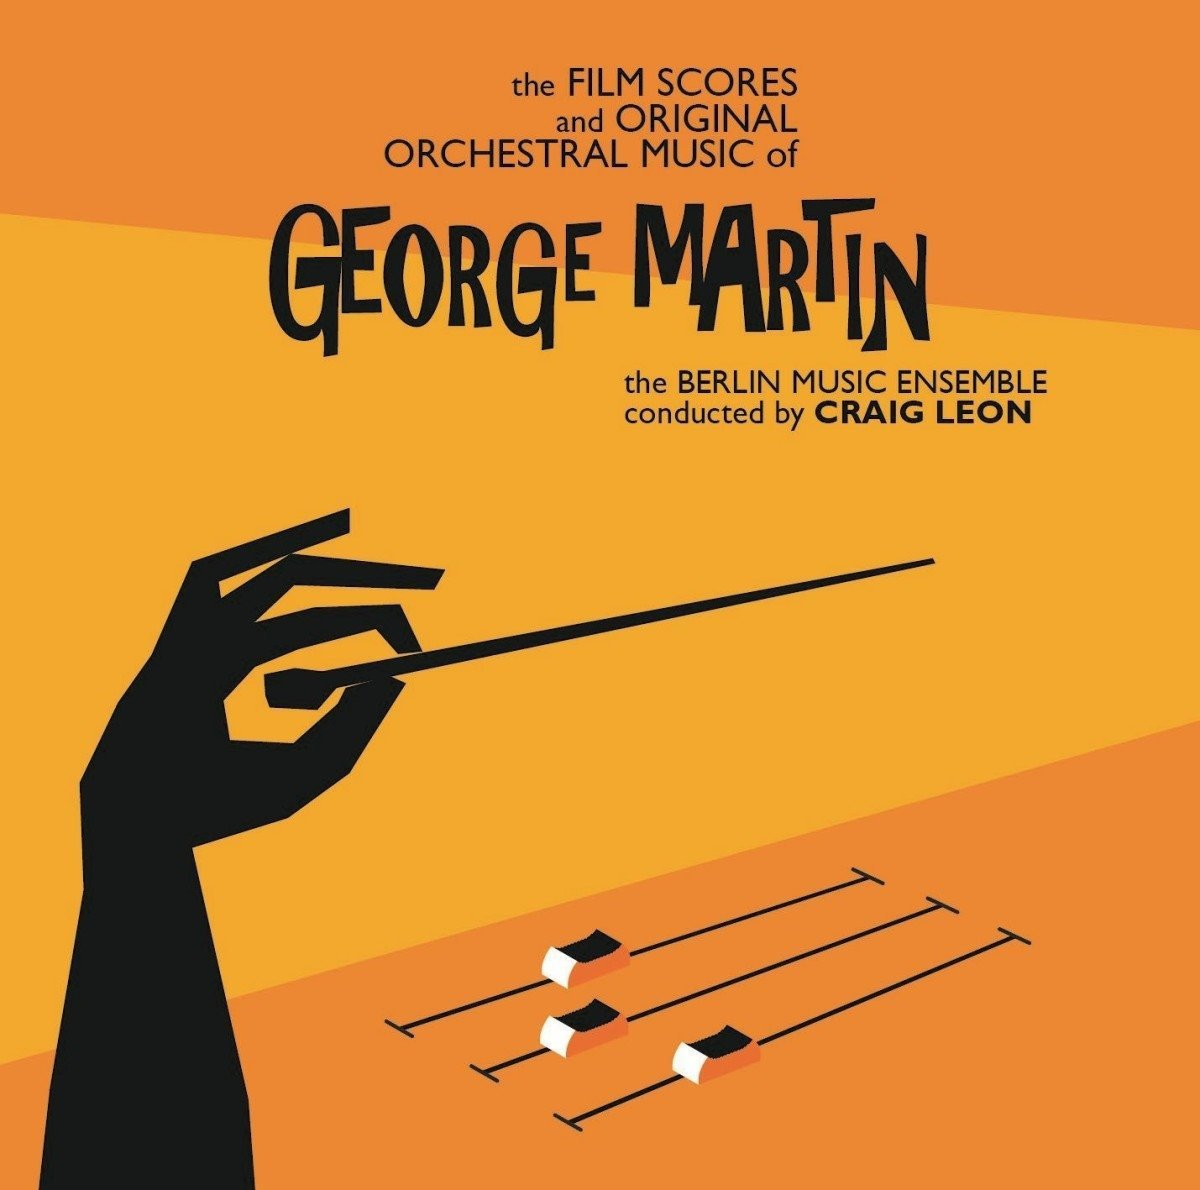 The Film Scores and Original Orchestral Music of George Martin by ATLAS REALISATIONS